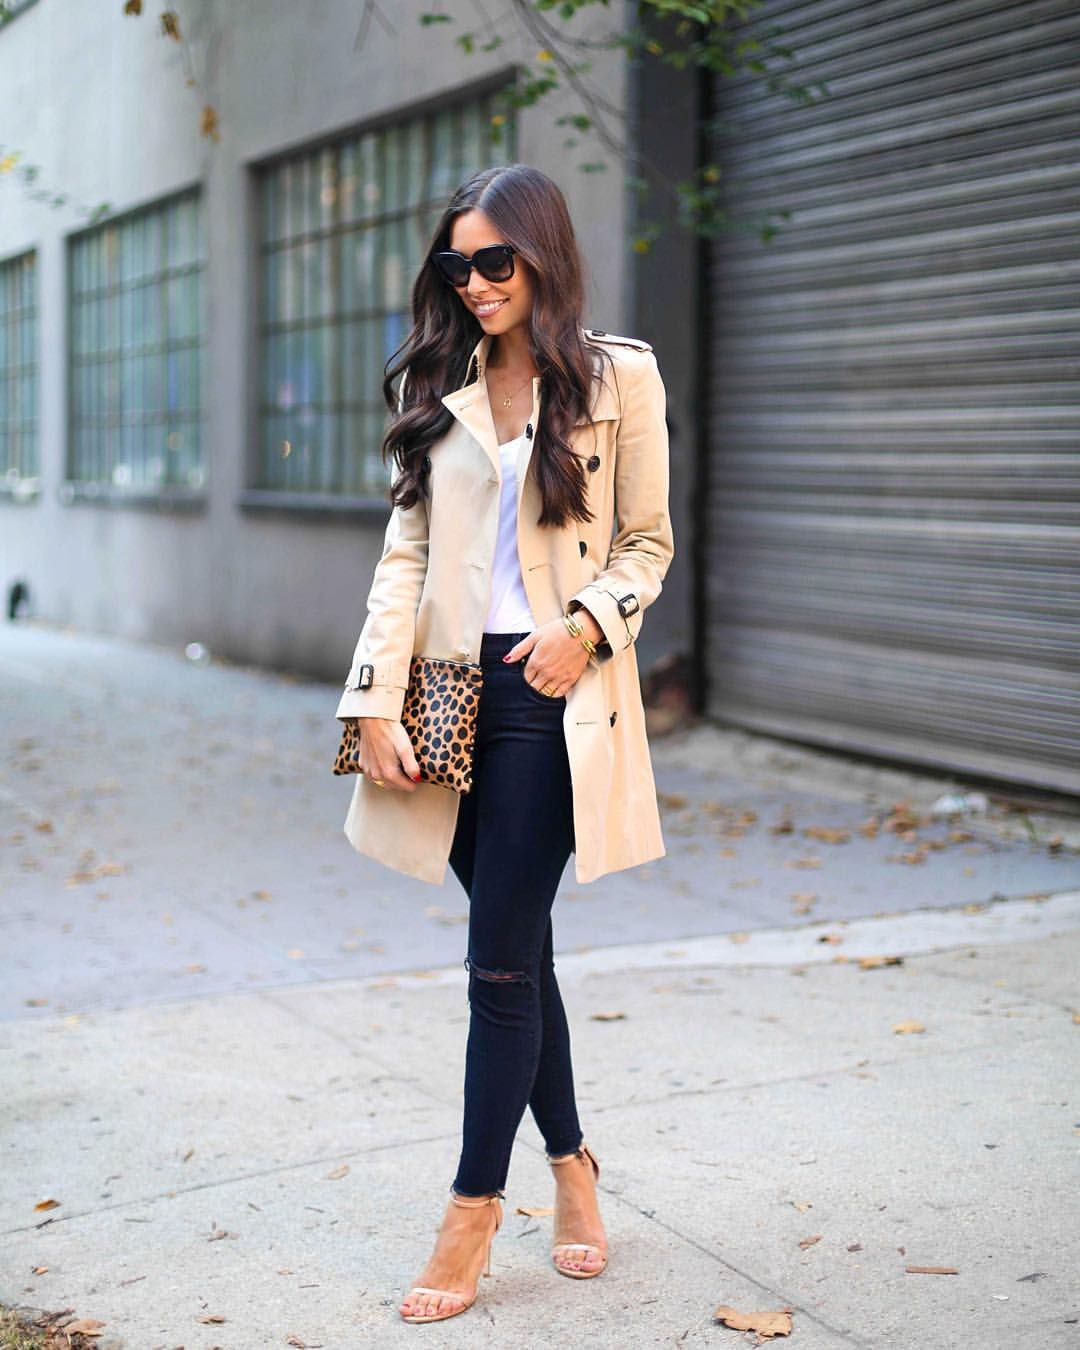 Beige trench, black pants, white top